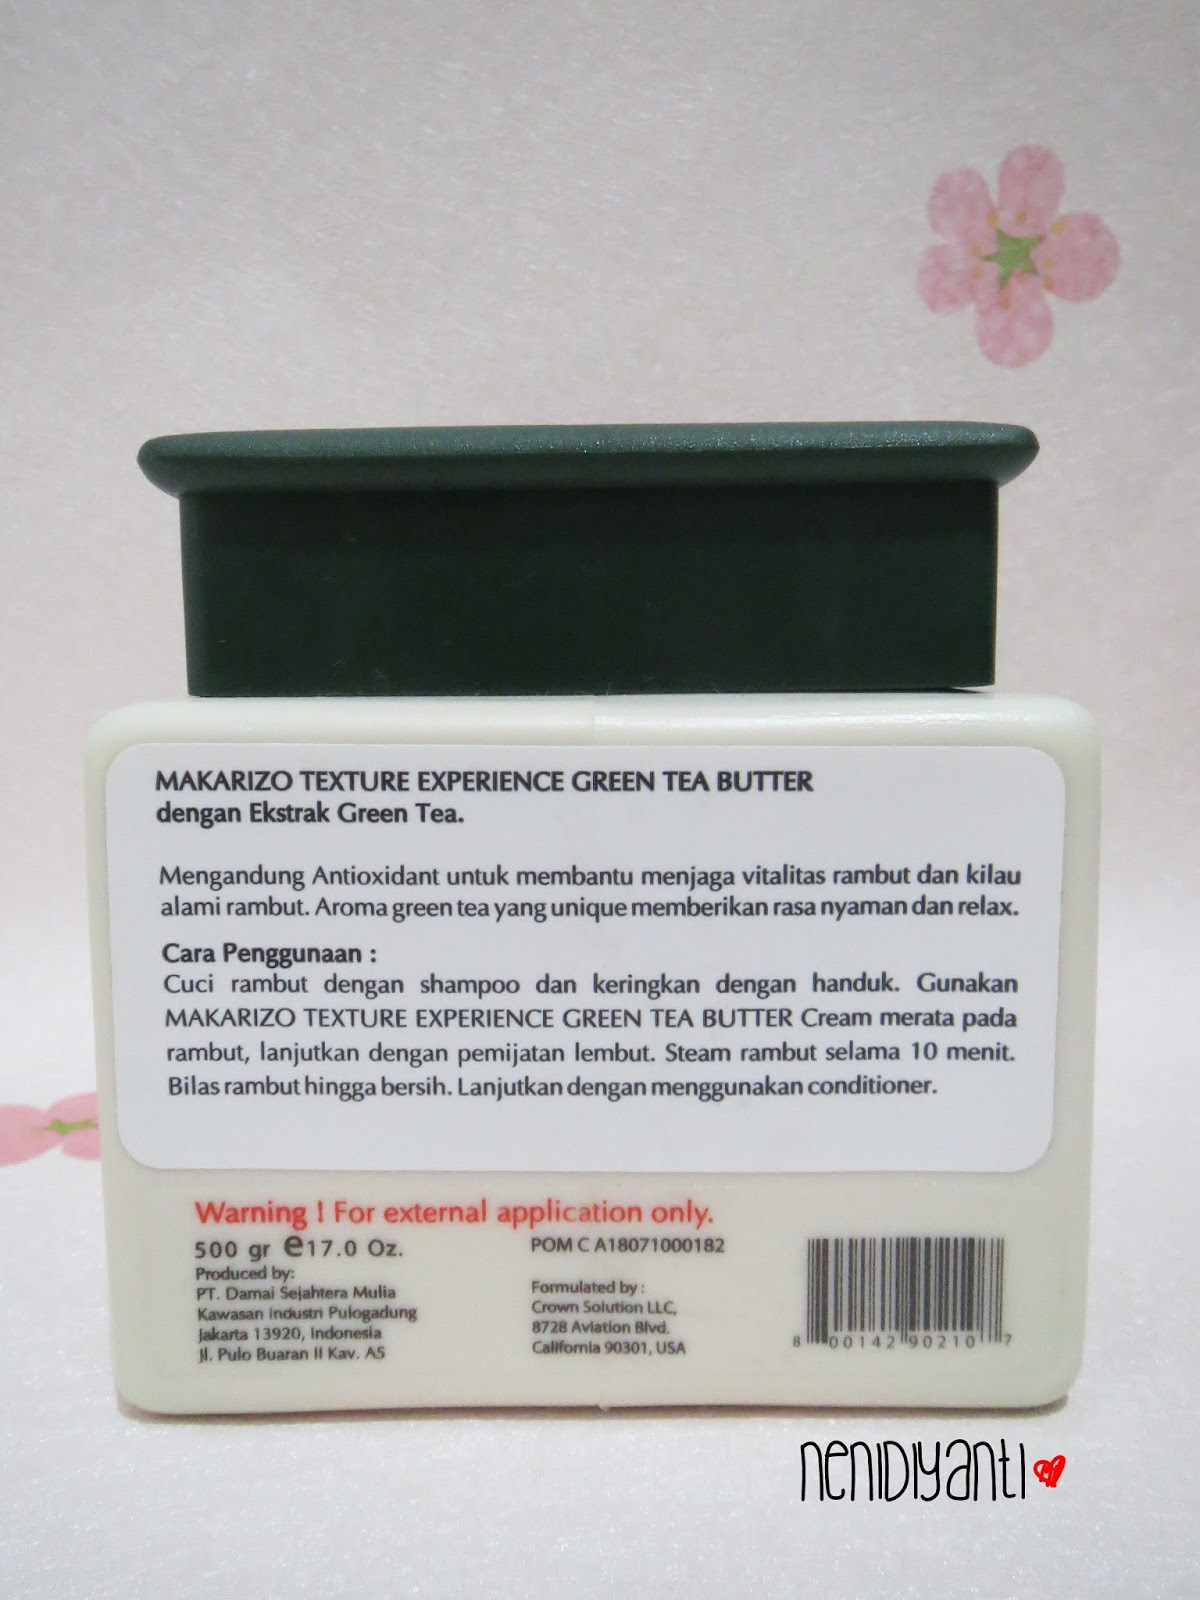 Kawaii Fuku Makarizo Hair Texture Experience Green Tea Butter Shampoo 250ml Contains Antioxidant To Maintain Vitality And Natural Luster The Unique Fragrance